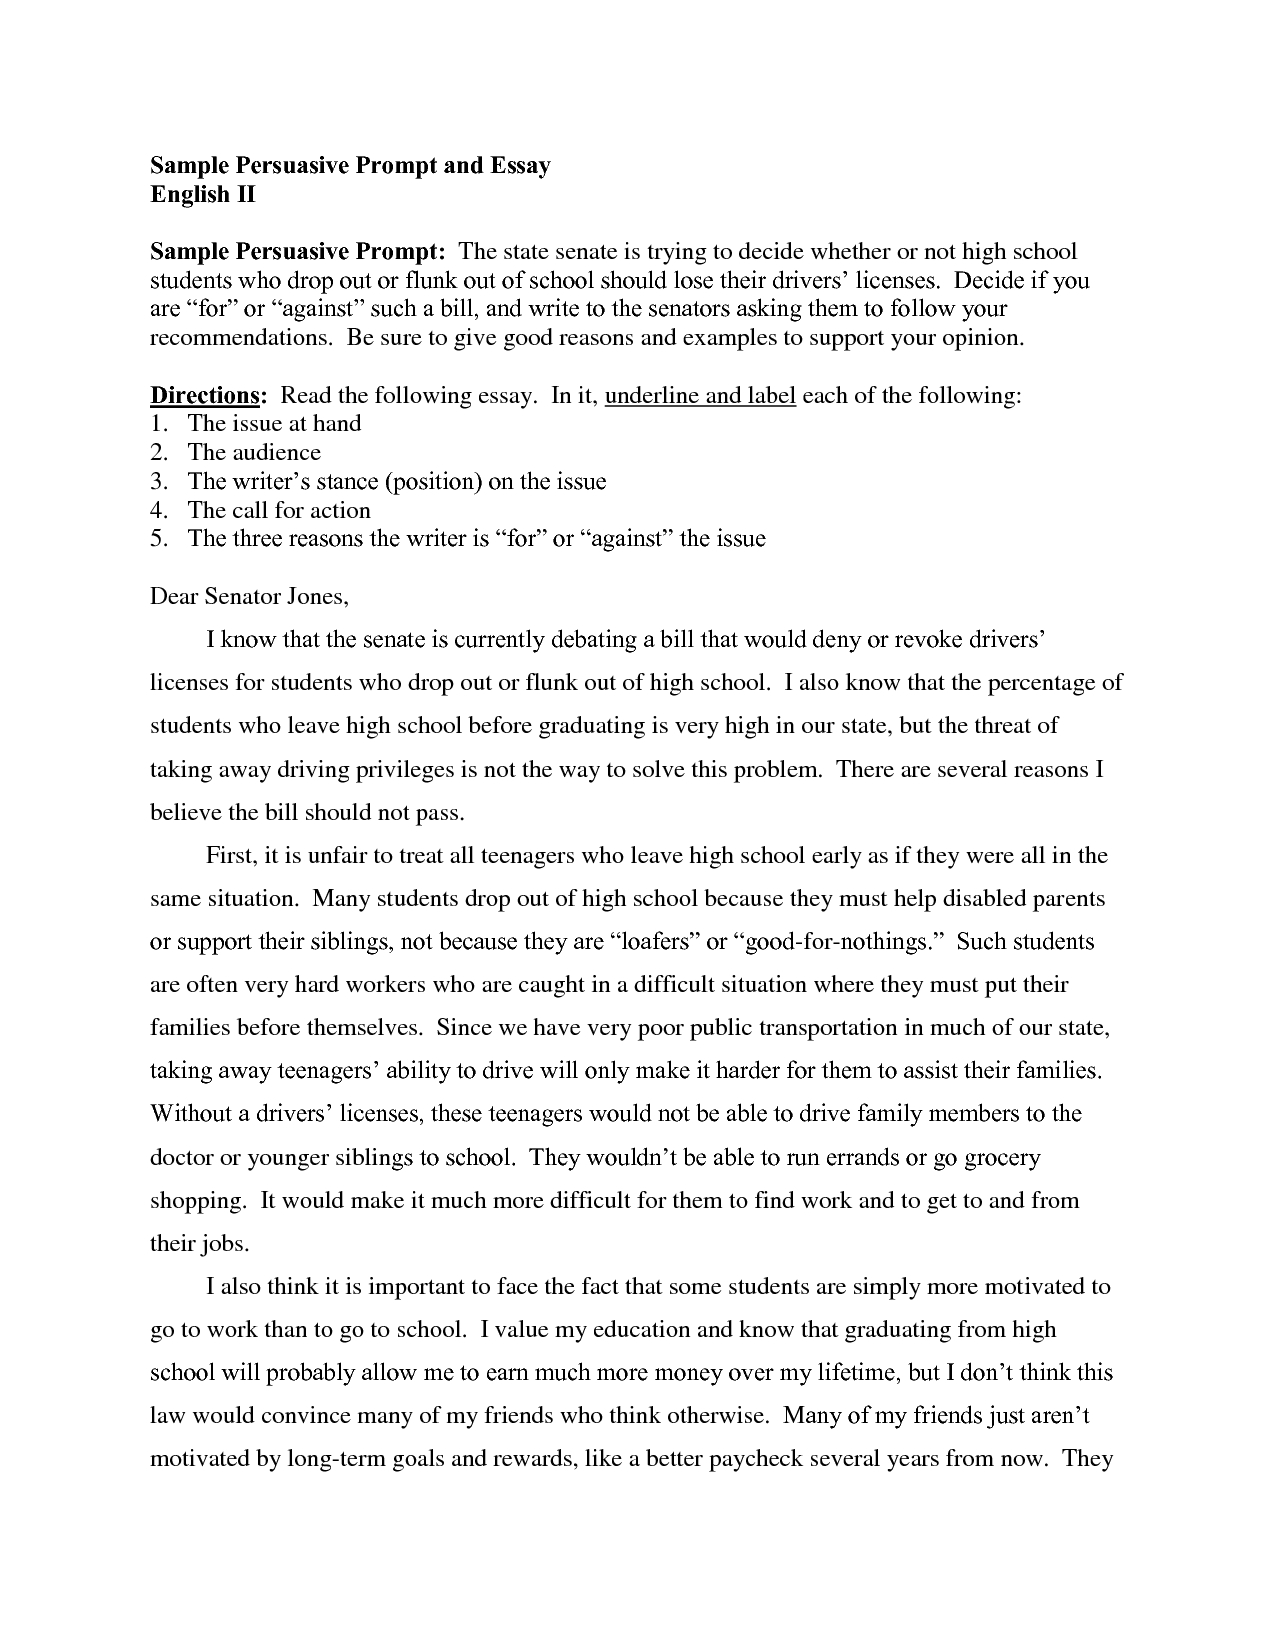 English Essays For High School Students  Topics For English Essays also Persuasive Essay Topics High School  Informative Synthesis Essay Topics For Research Paper  How To Write A Essay Proposal